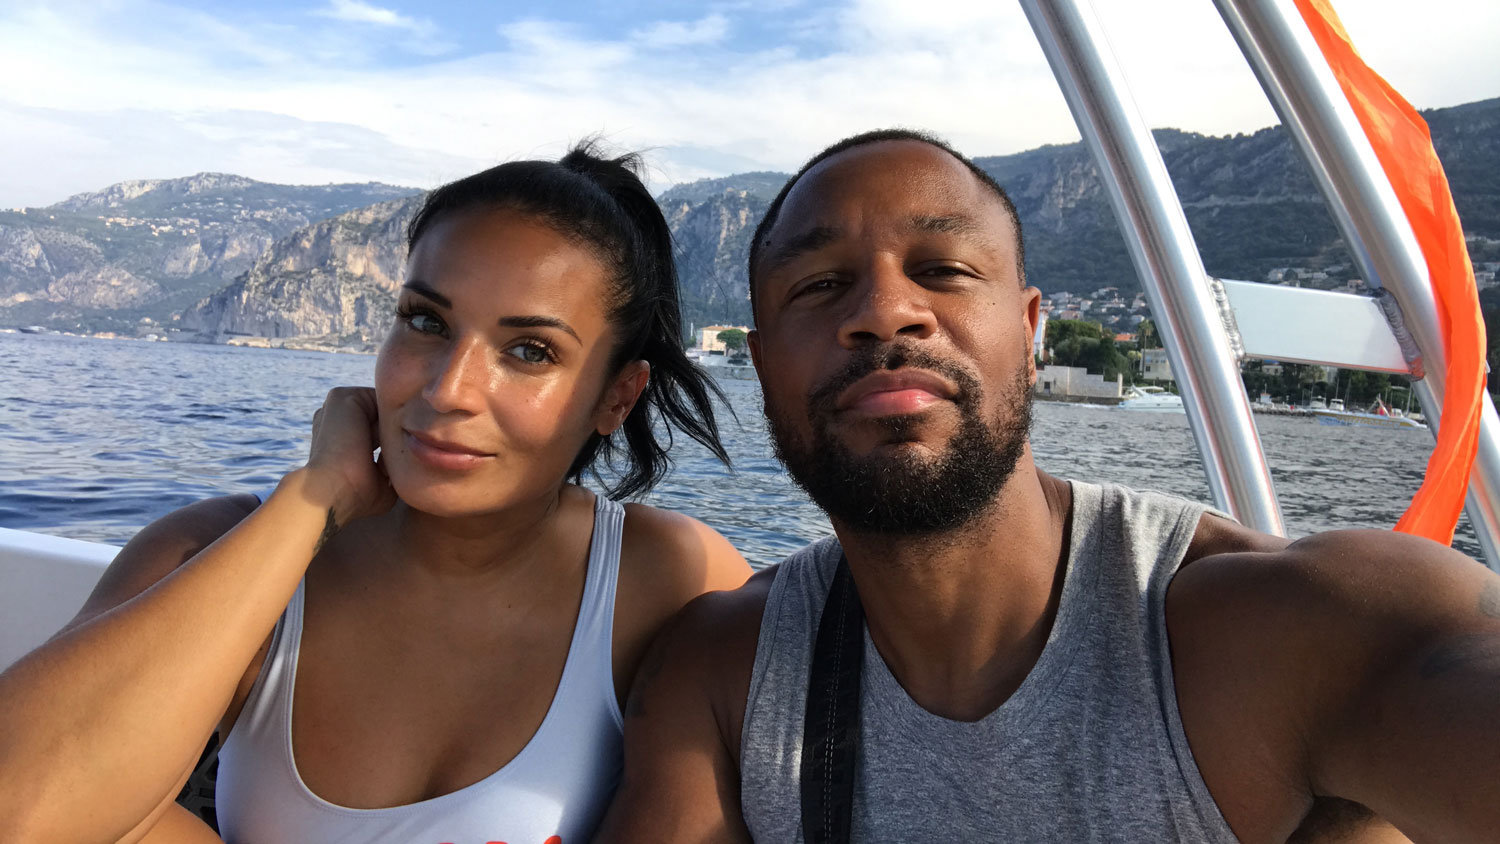 Zena Foster and Durrell Tank Babbs on excursion boat in the South of France